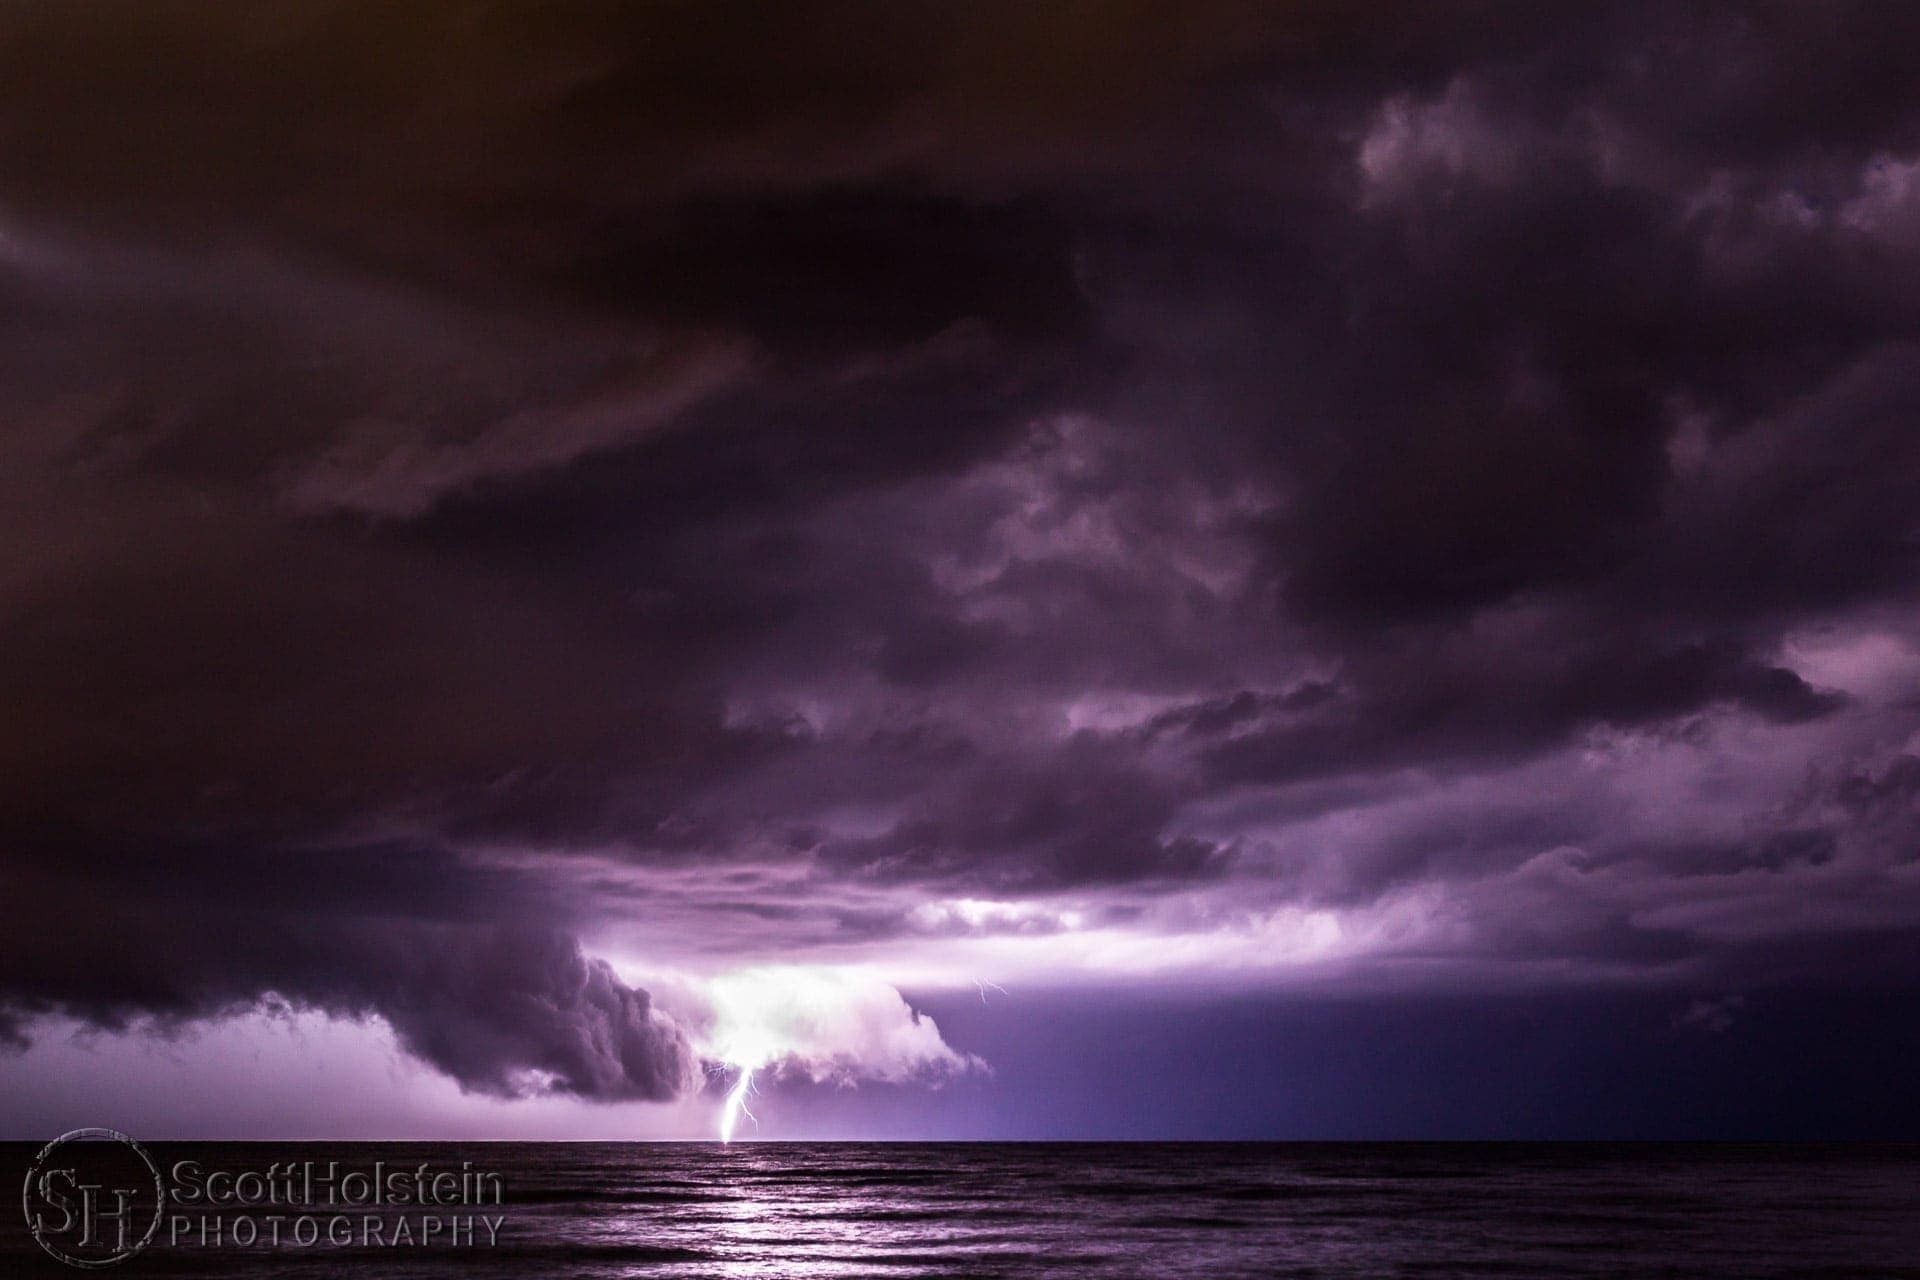 Beach Lightning: A dramatic summer thunderstorm at night flashes lightning over water off the beach in Venice, Florida.